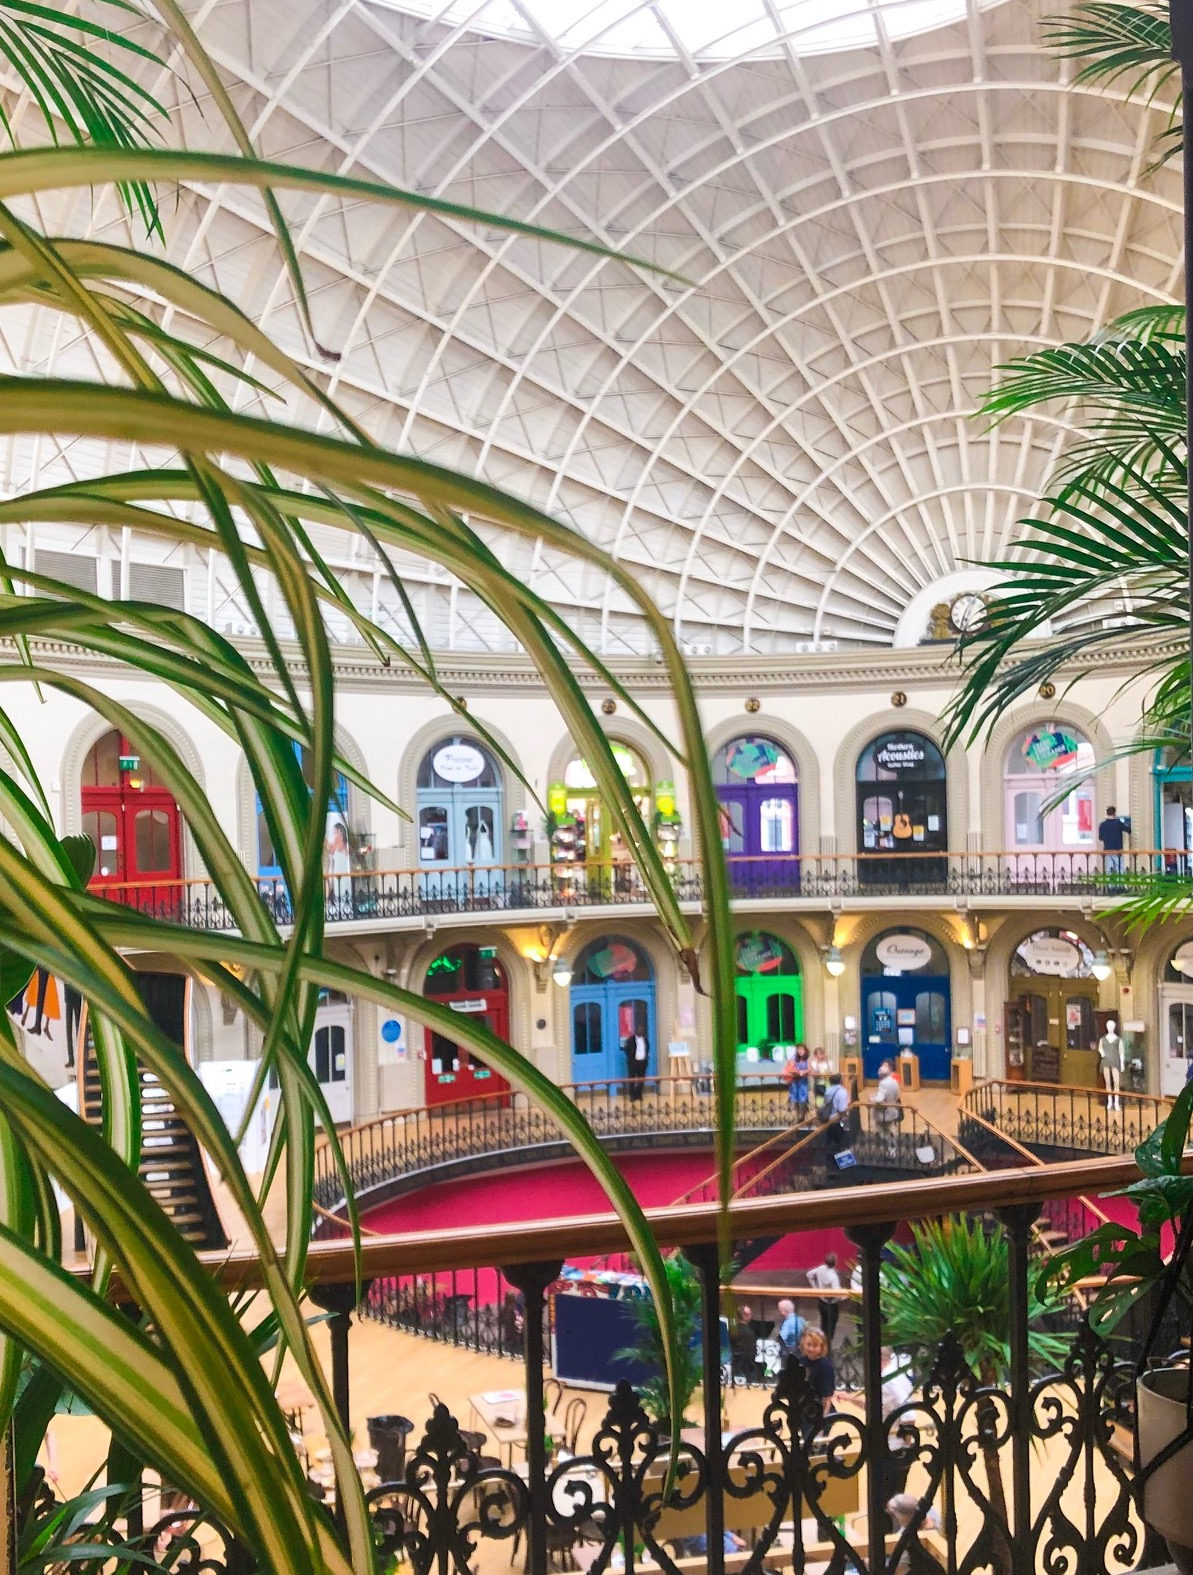 Leeds Corn Exchange With Plants in Foreground supporting Independent Businesses in Leeds Corn Exchange